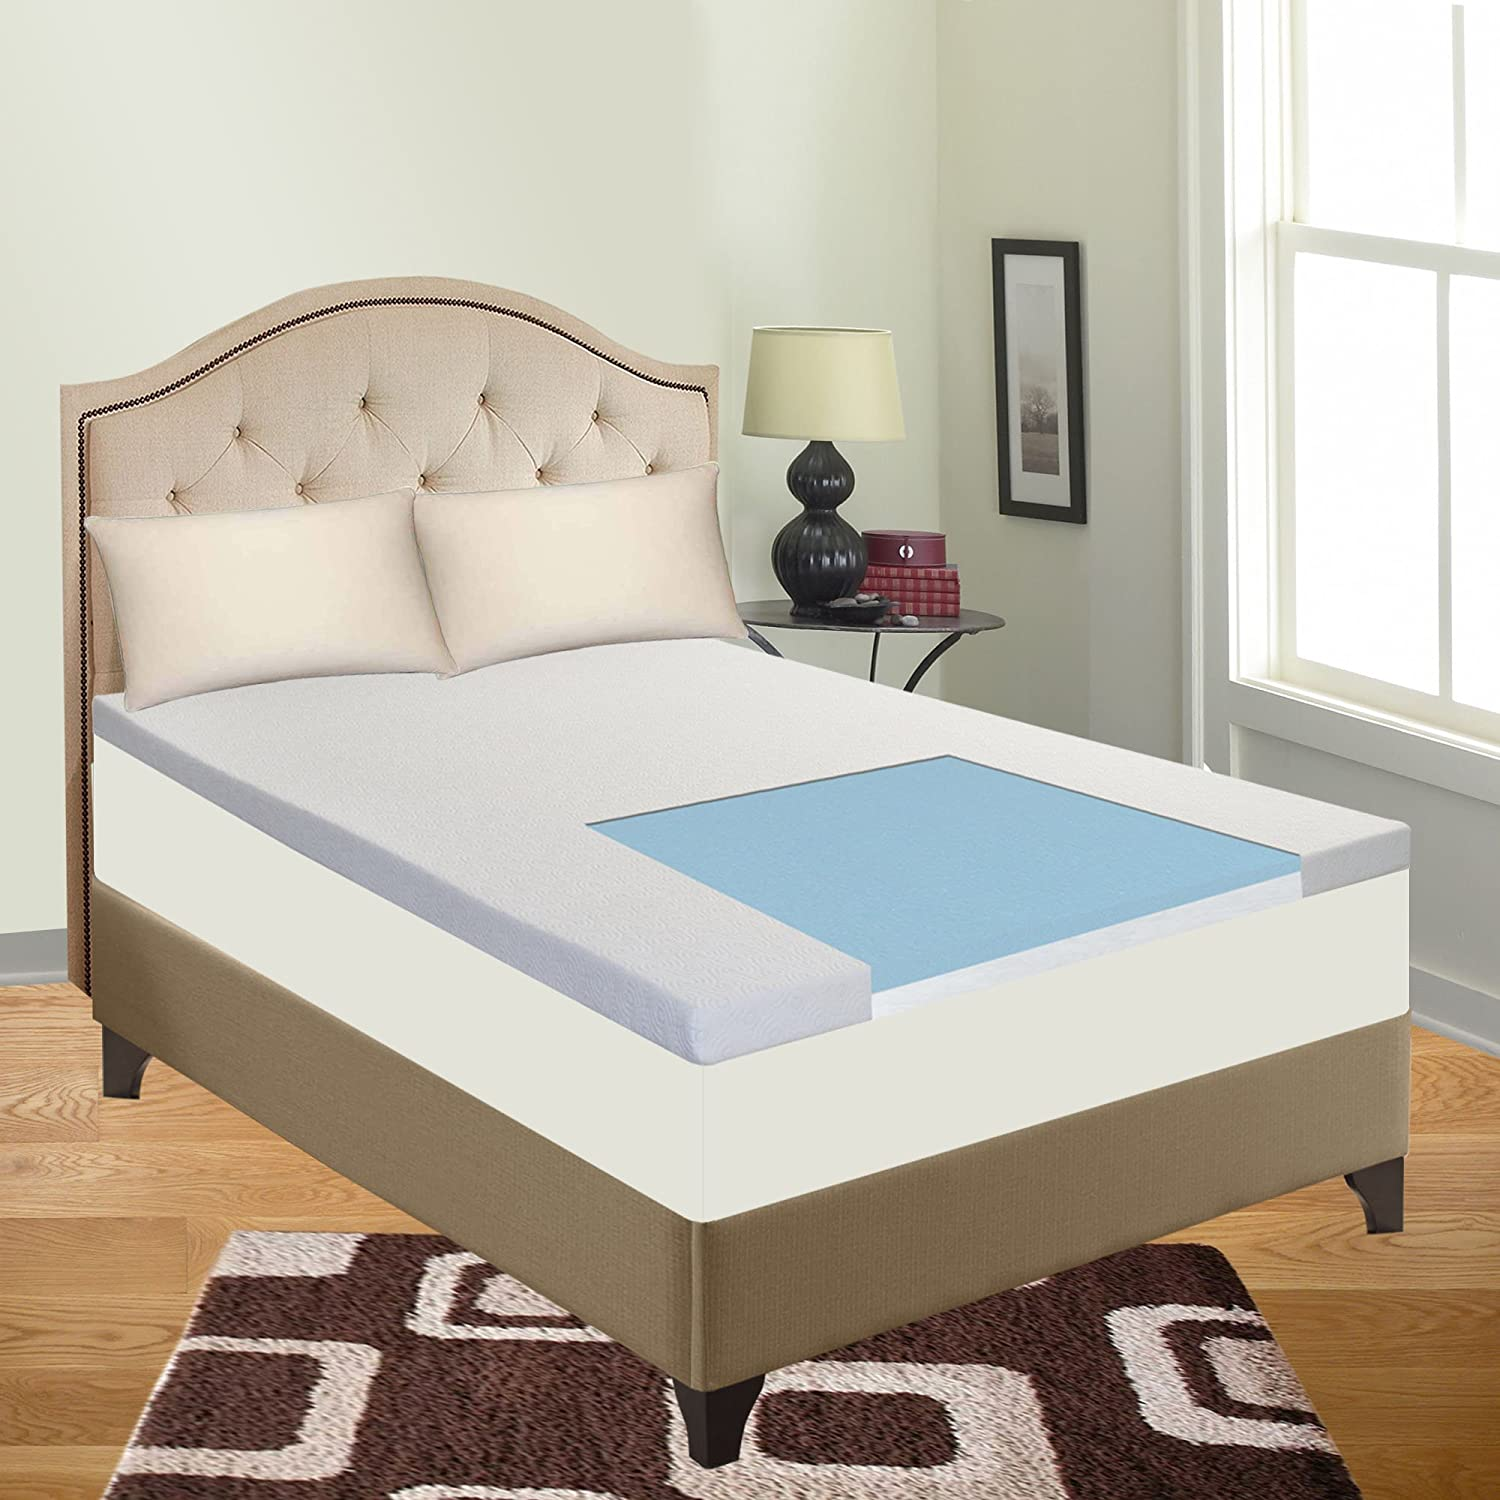 "Amazon.com: Cool Gel Memory Foam Topper for Queen Size Mattress - Provides  Comfortable Support and Keeps You Cool All Night Long - 2"" Thick: Home &  Kitchen"